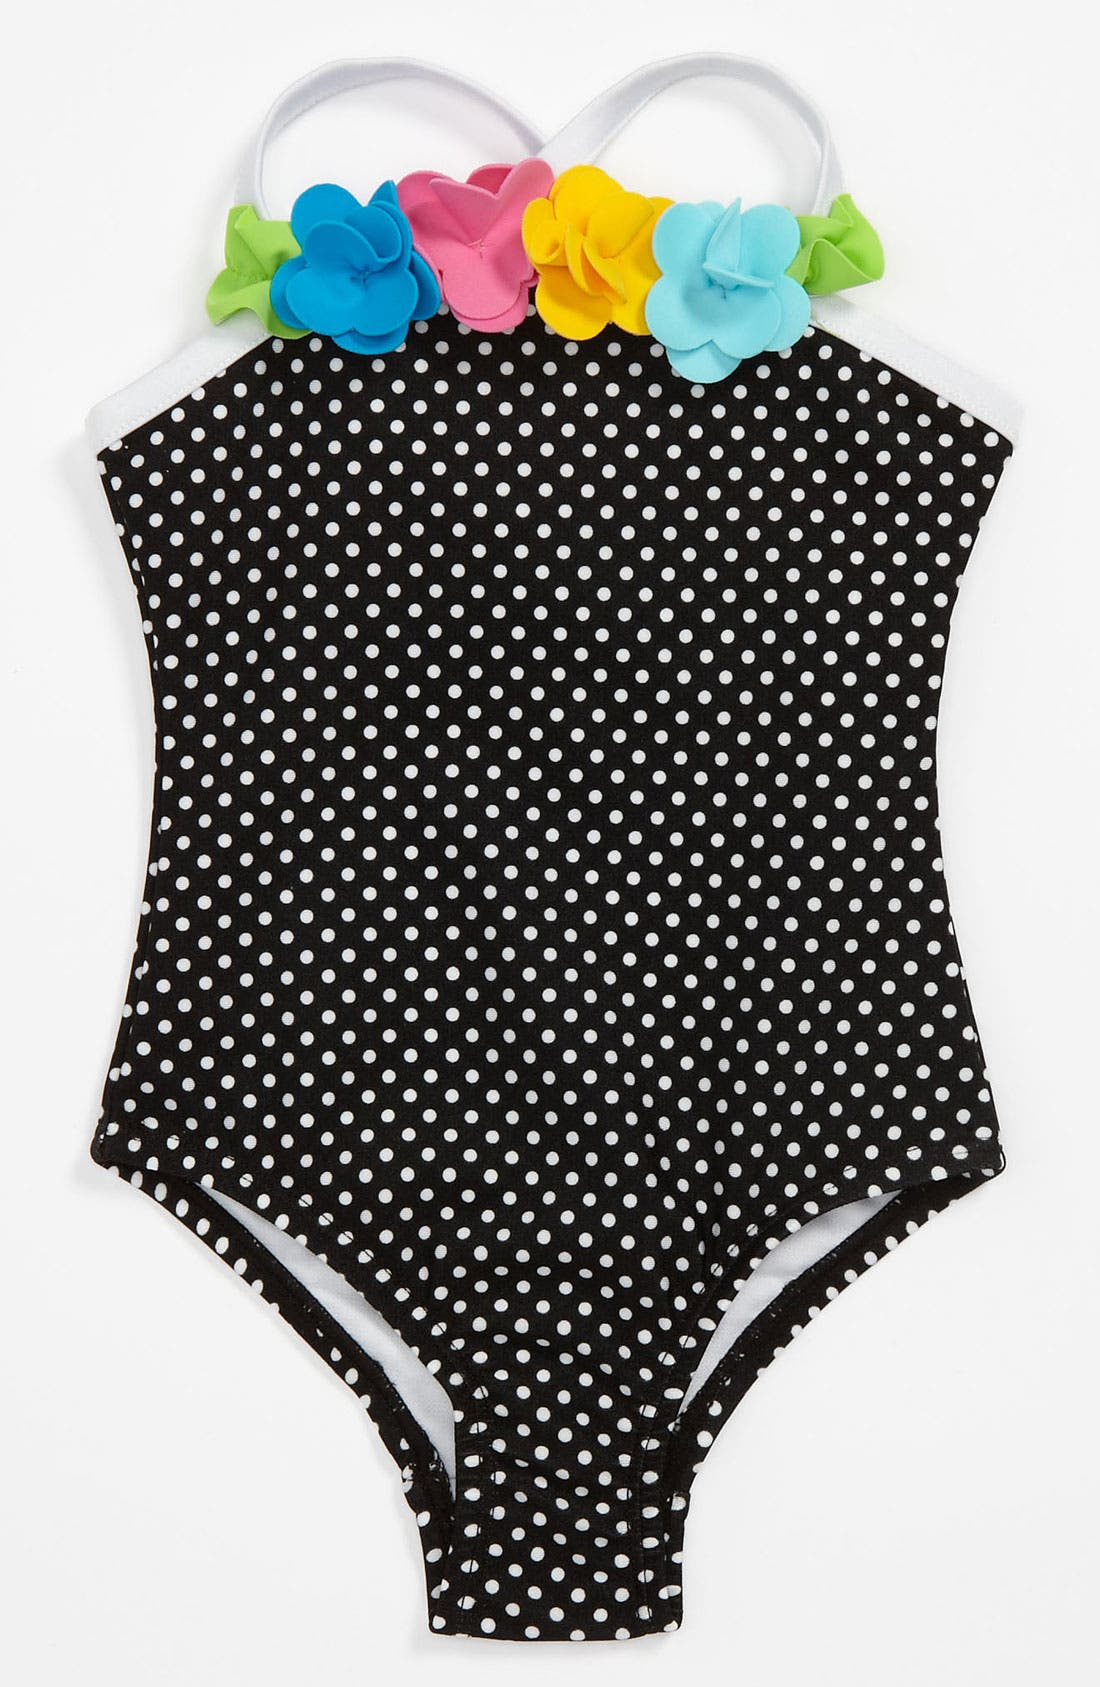 Alternate Image 1 Selected - Love U Lots One Piece Swimsuit (Baby)